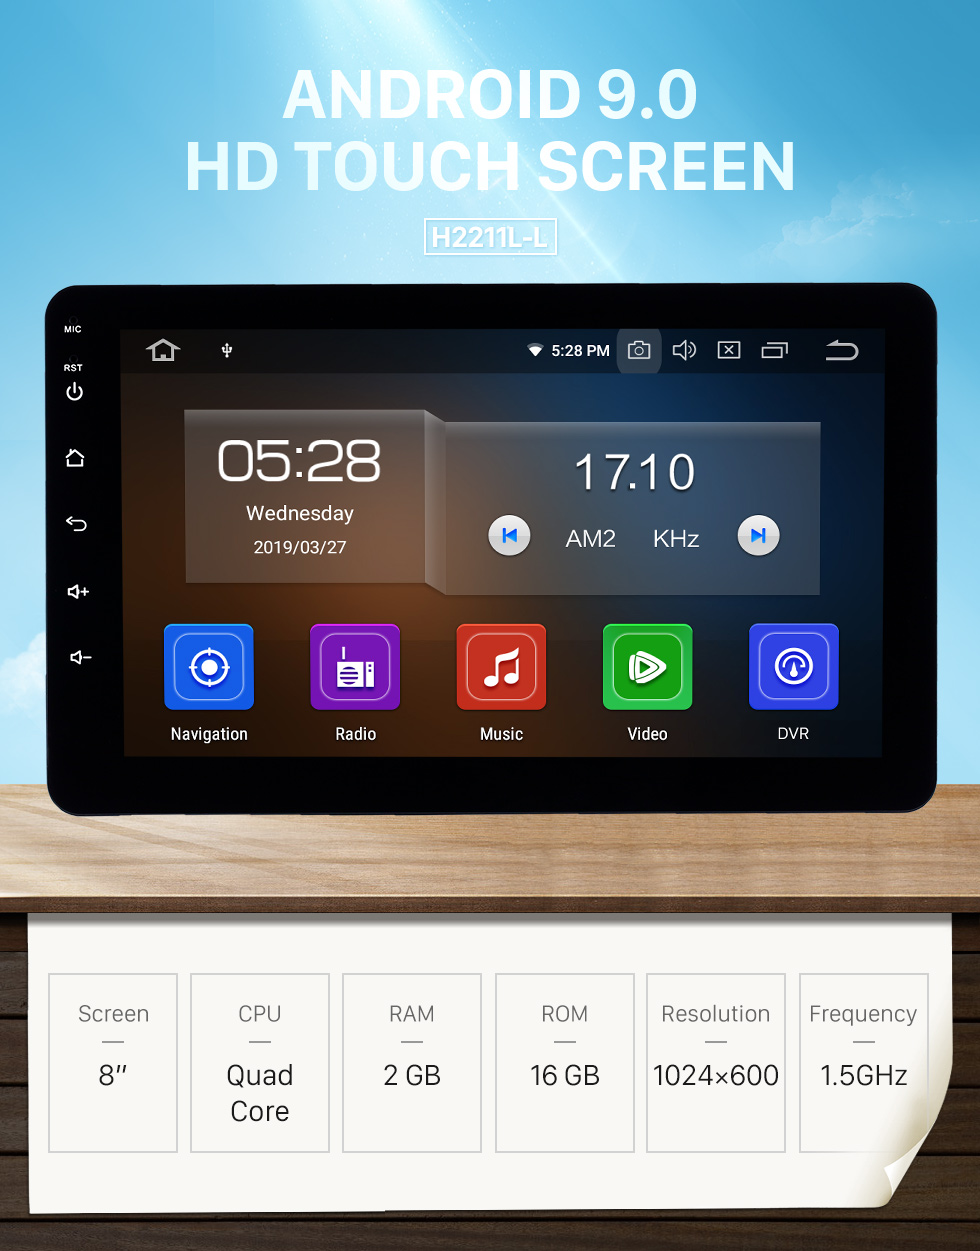 Seicane 8 inch Android 9.0 Universal Radio Bluetooth HD Touchscreen GPS Navigation Carplay USB AUX support 4G WIFI Rearview camera OBD2 TPMS DAB+ DVR